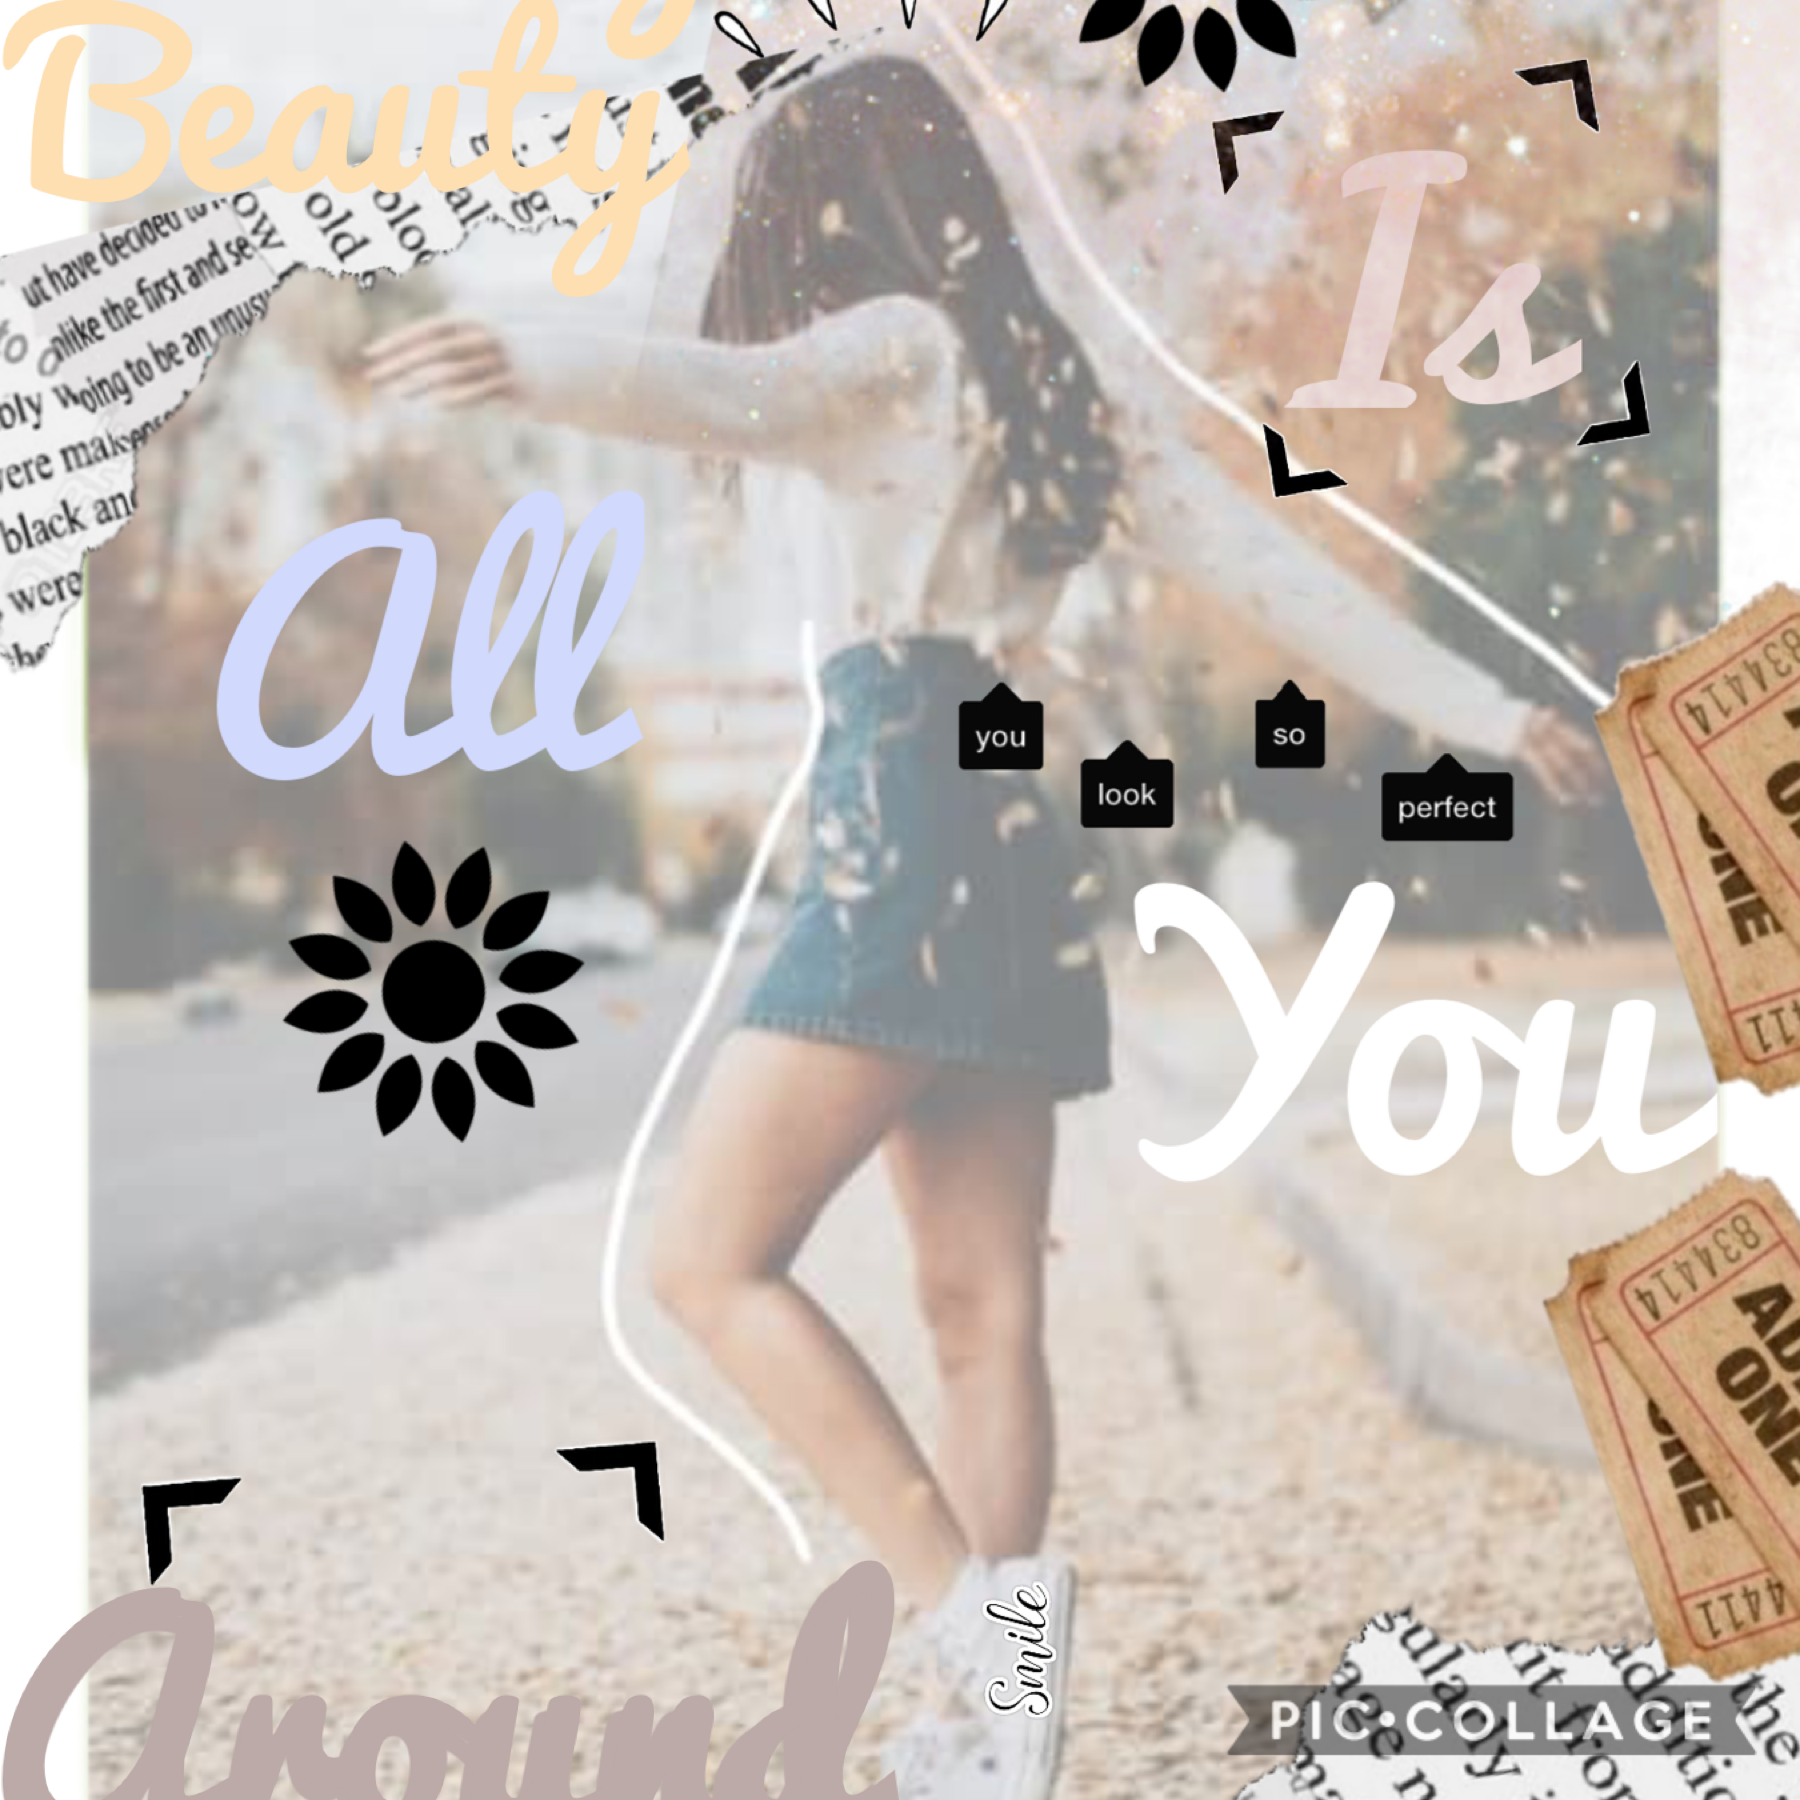 💛Cloe18 and duh_its_brii collab collage💛